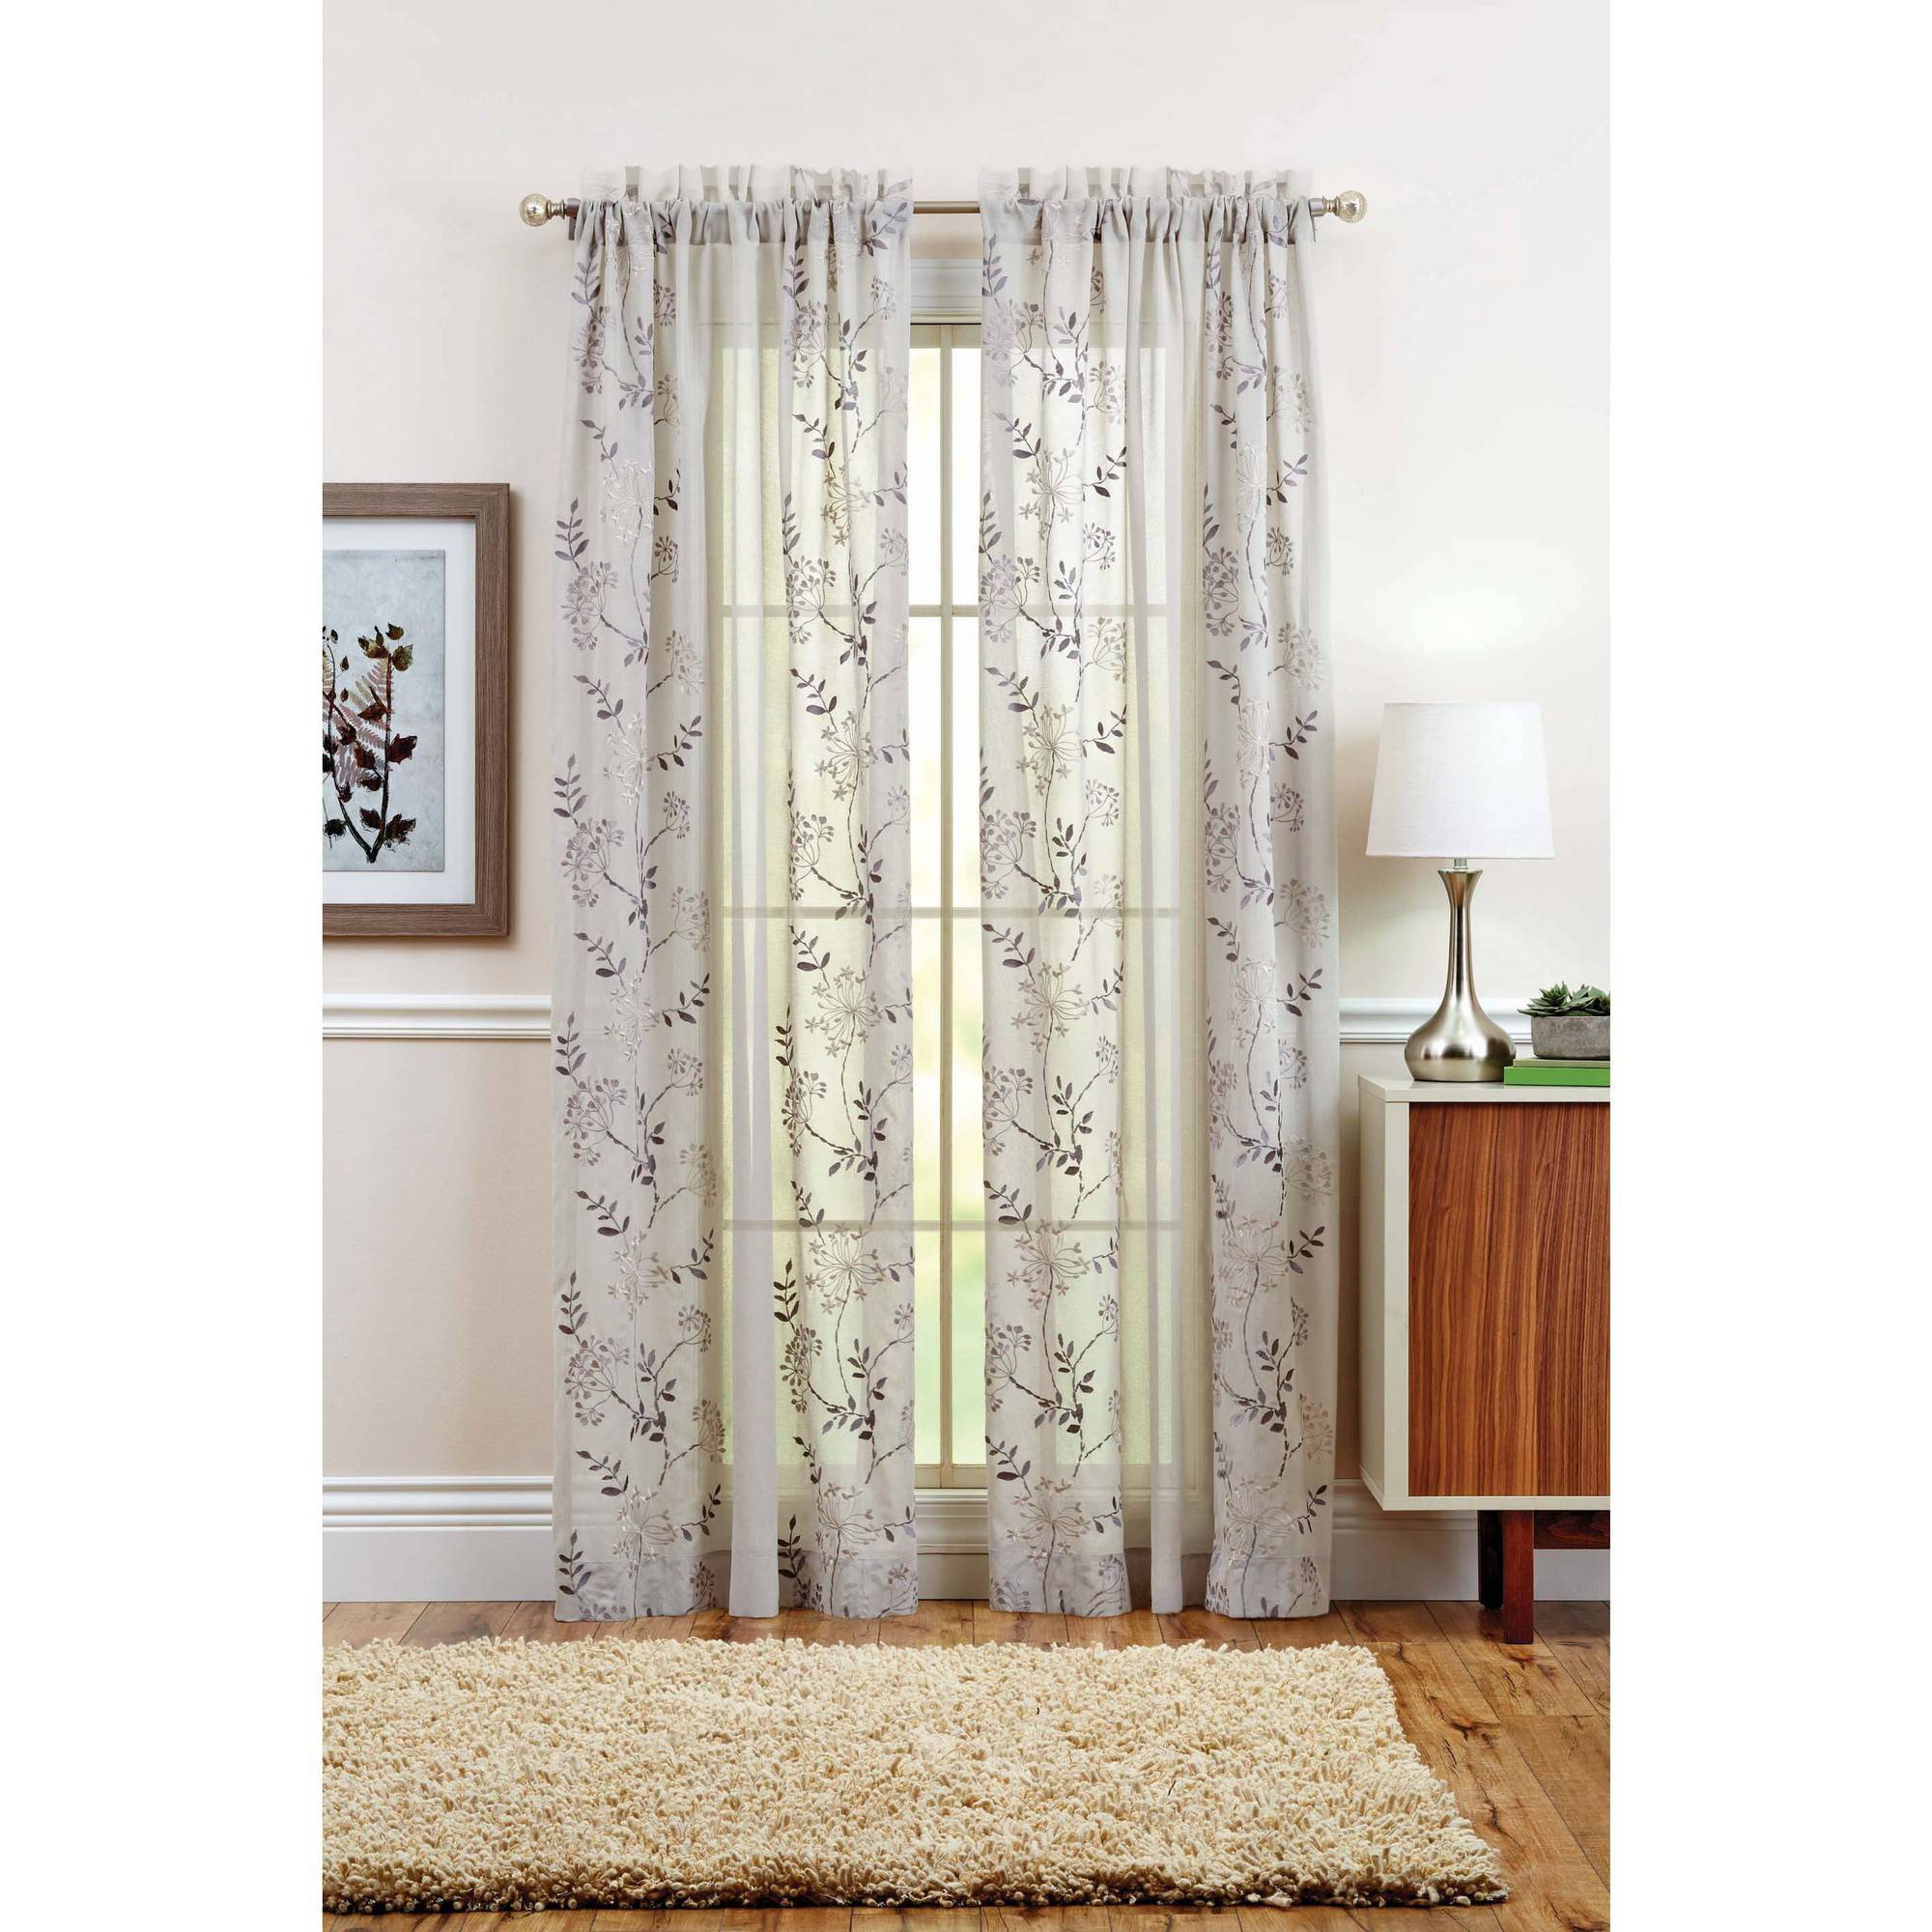 Better Homes and Gardens Garden Vines Grommet Curtain Panel, Gray by